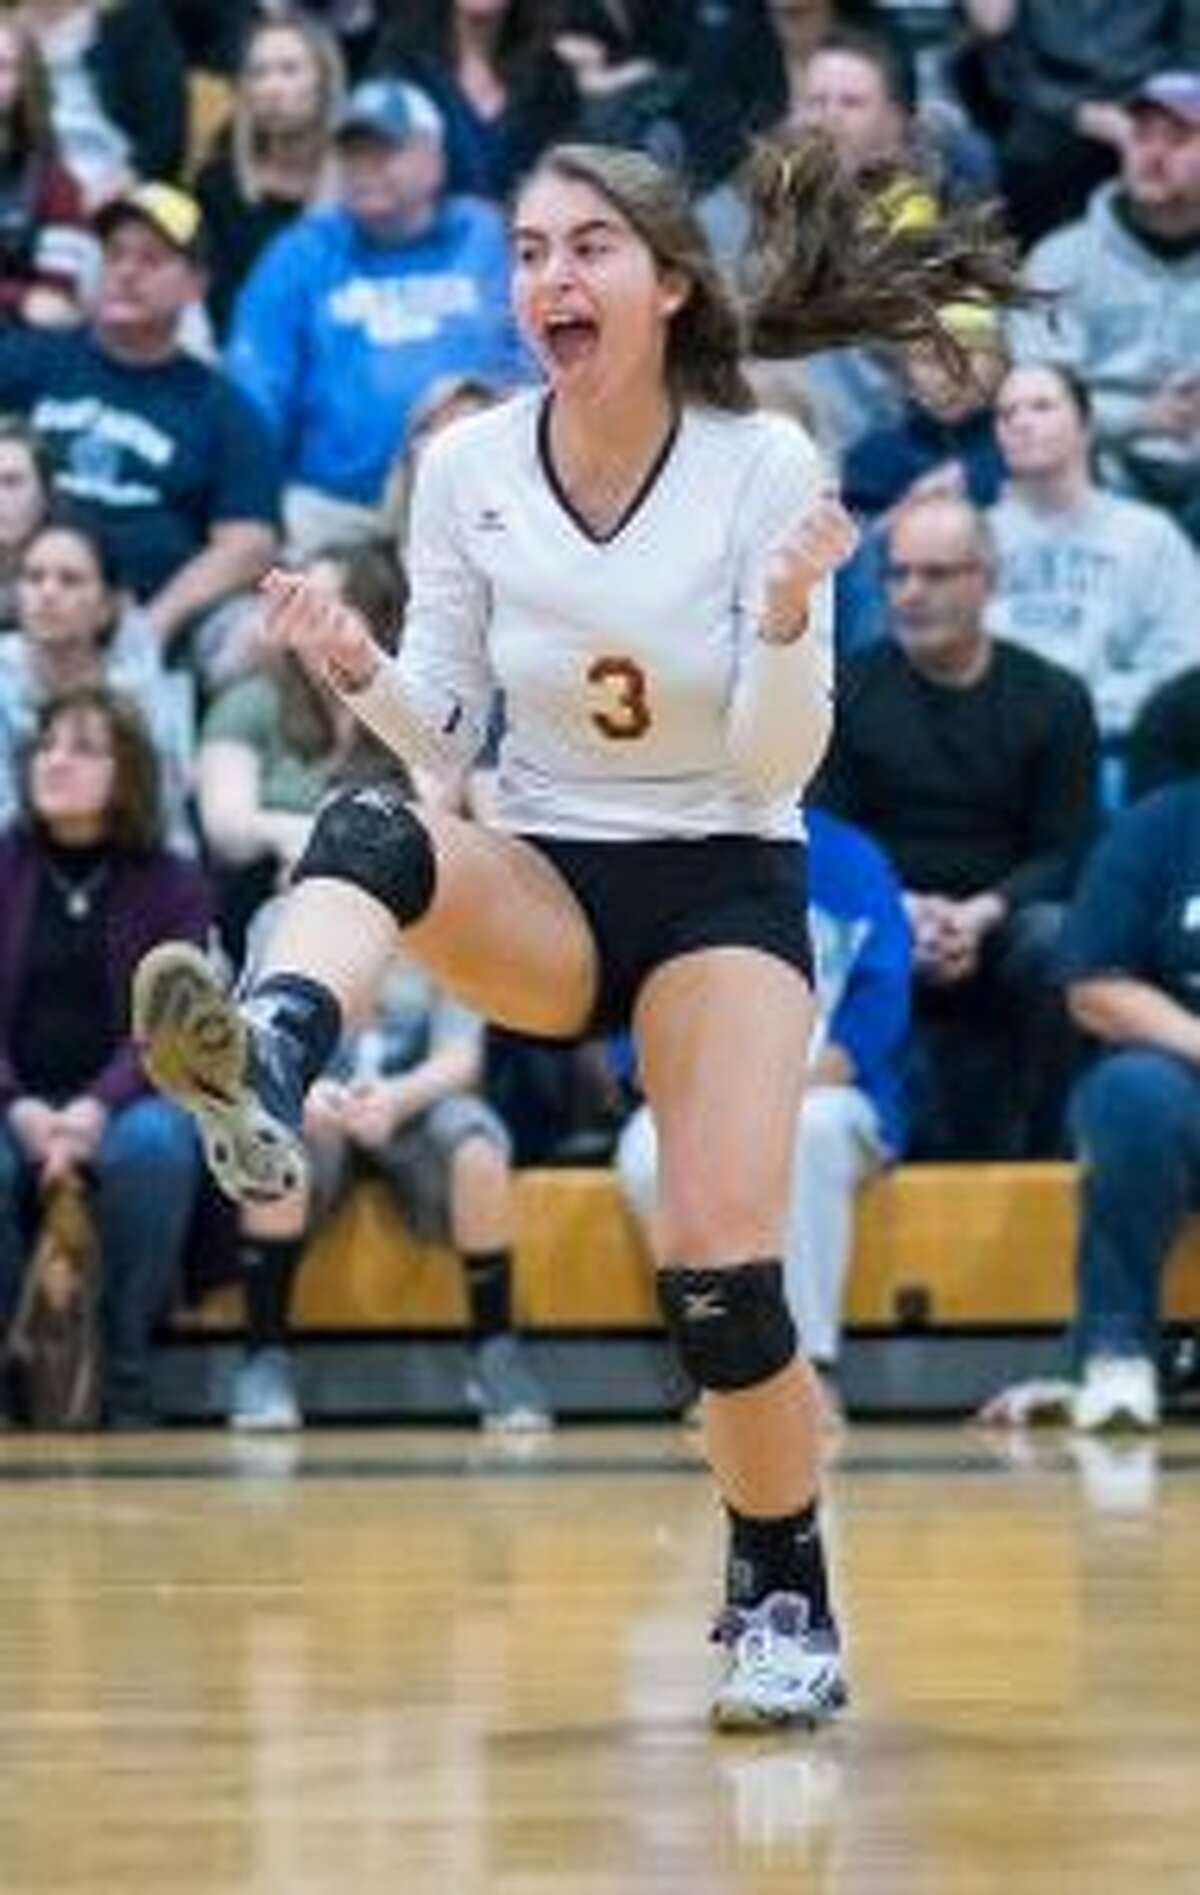 Grace Vocalina had 36 assists in the title match. - David G. Whitham photos